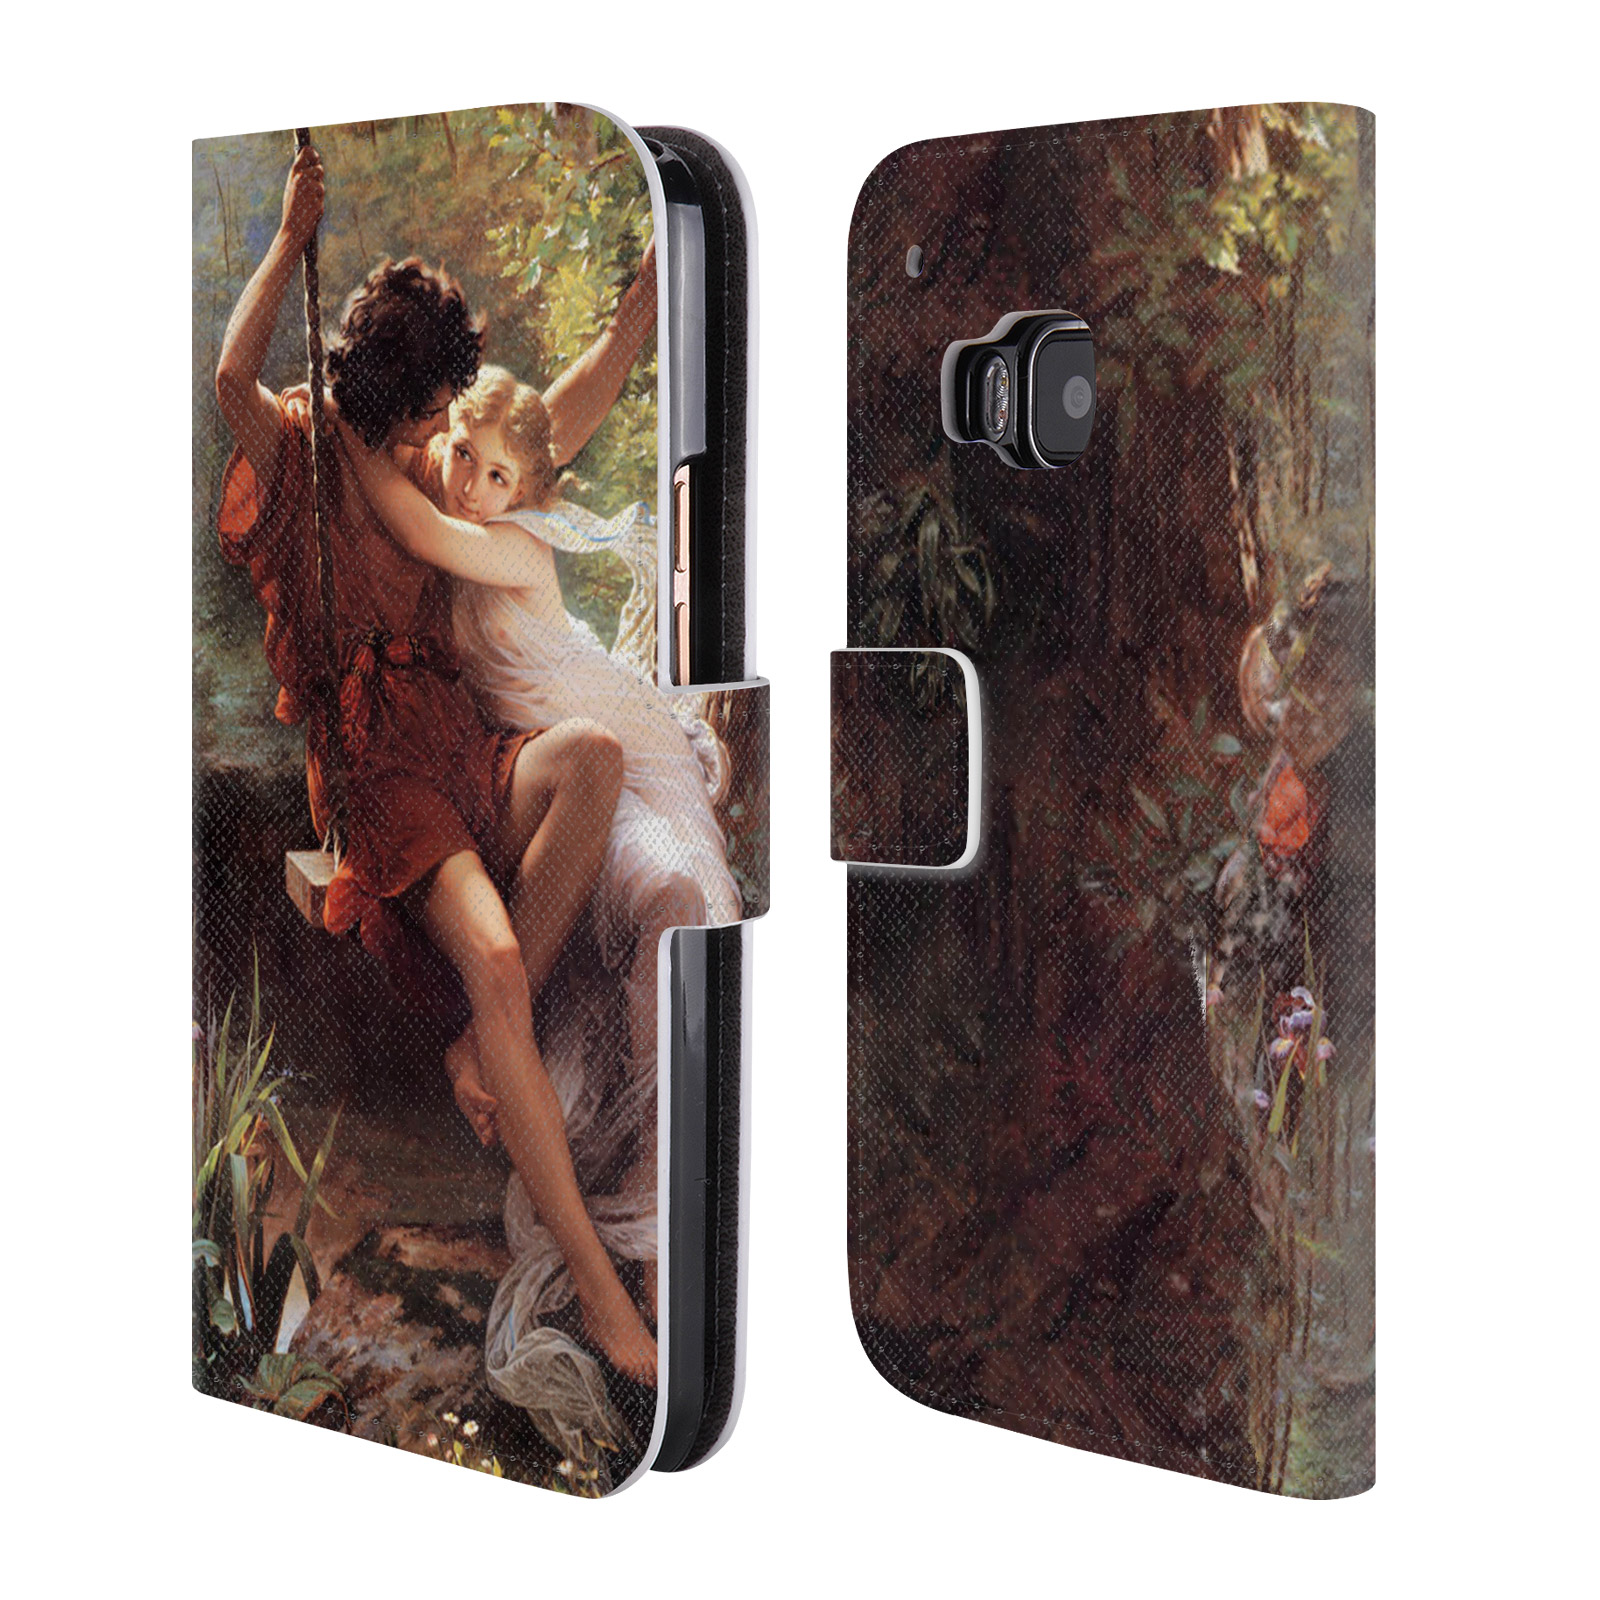 OFFICIAL-MASTERS-COLLECTION-PAINTINGS-2-LEATHER-BOOK-CASE-FOR-HTC-PHONES-1